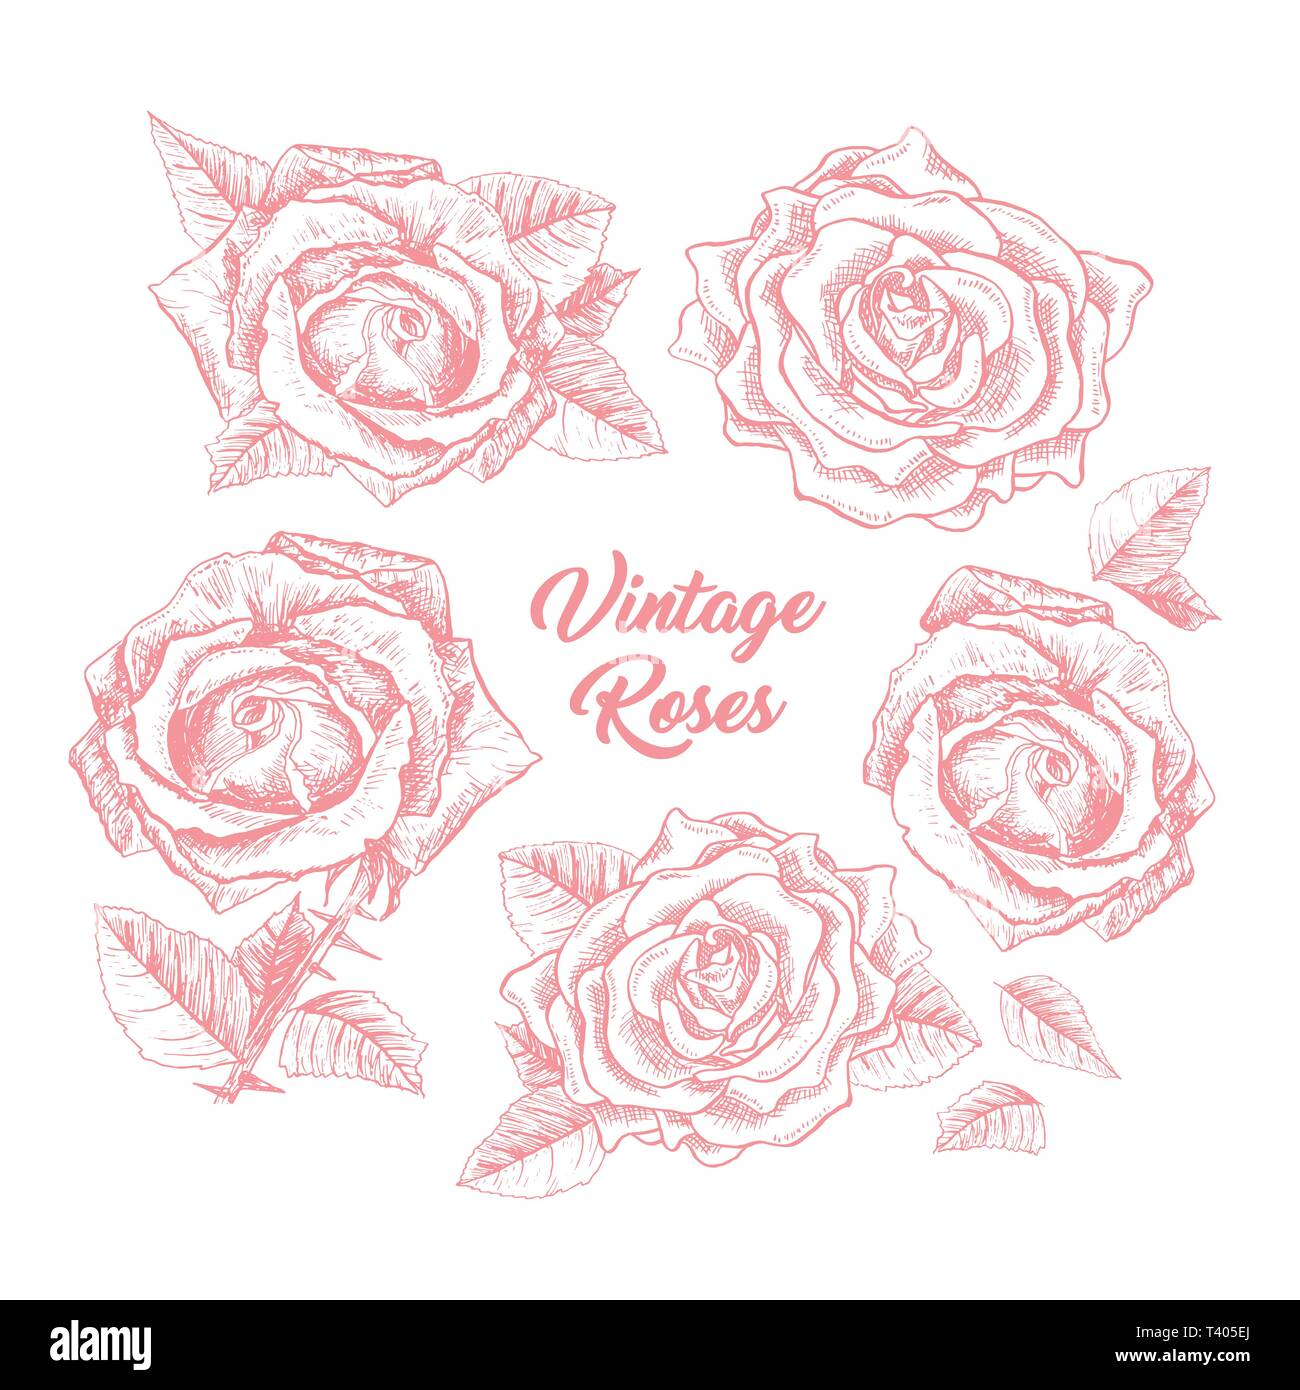 Roses Hand Drawn Vector Illustration Black And White Rosebuds Ink Pen Cliparts Floral Outline Drawings Set Flower Sketches With Vintage Roses Lettering Isolated Floral Engraving Design Elements Stock Vector Image Art